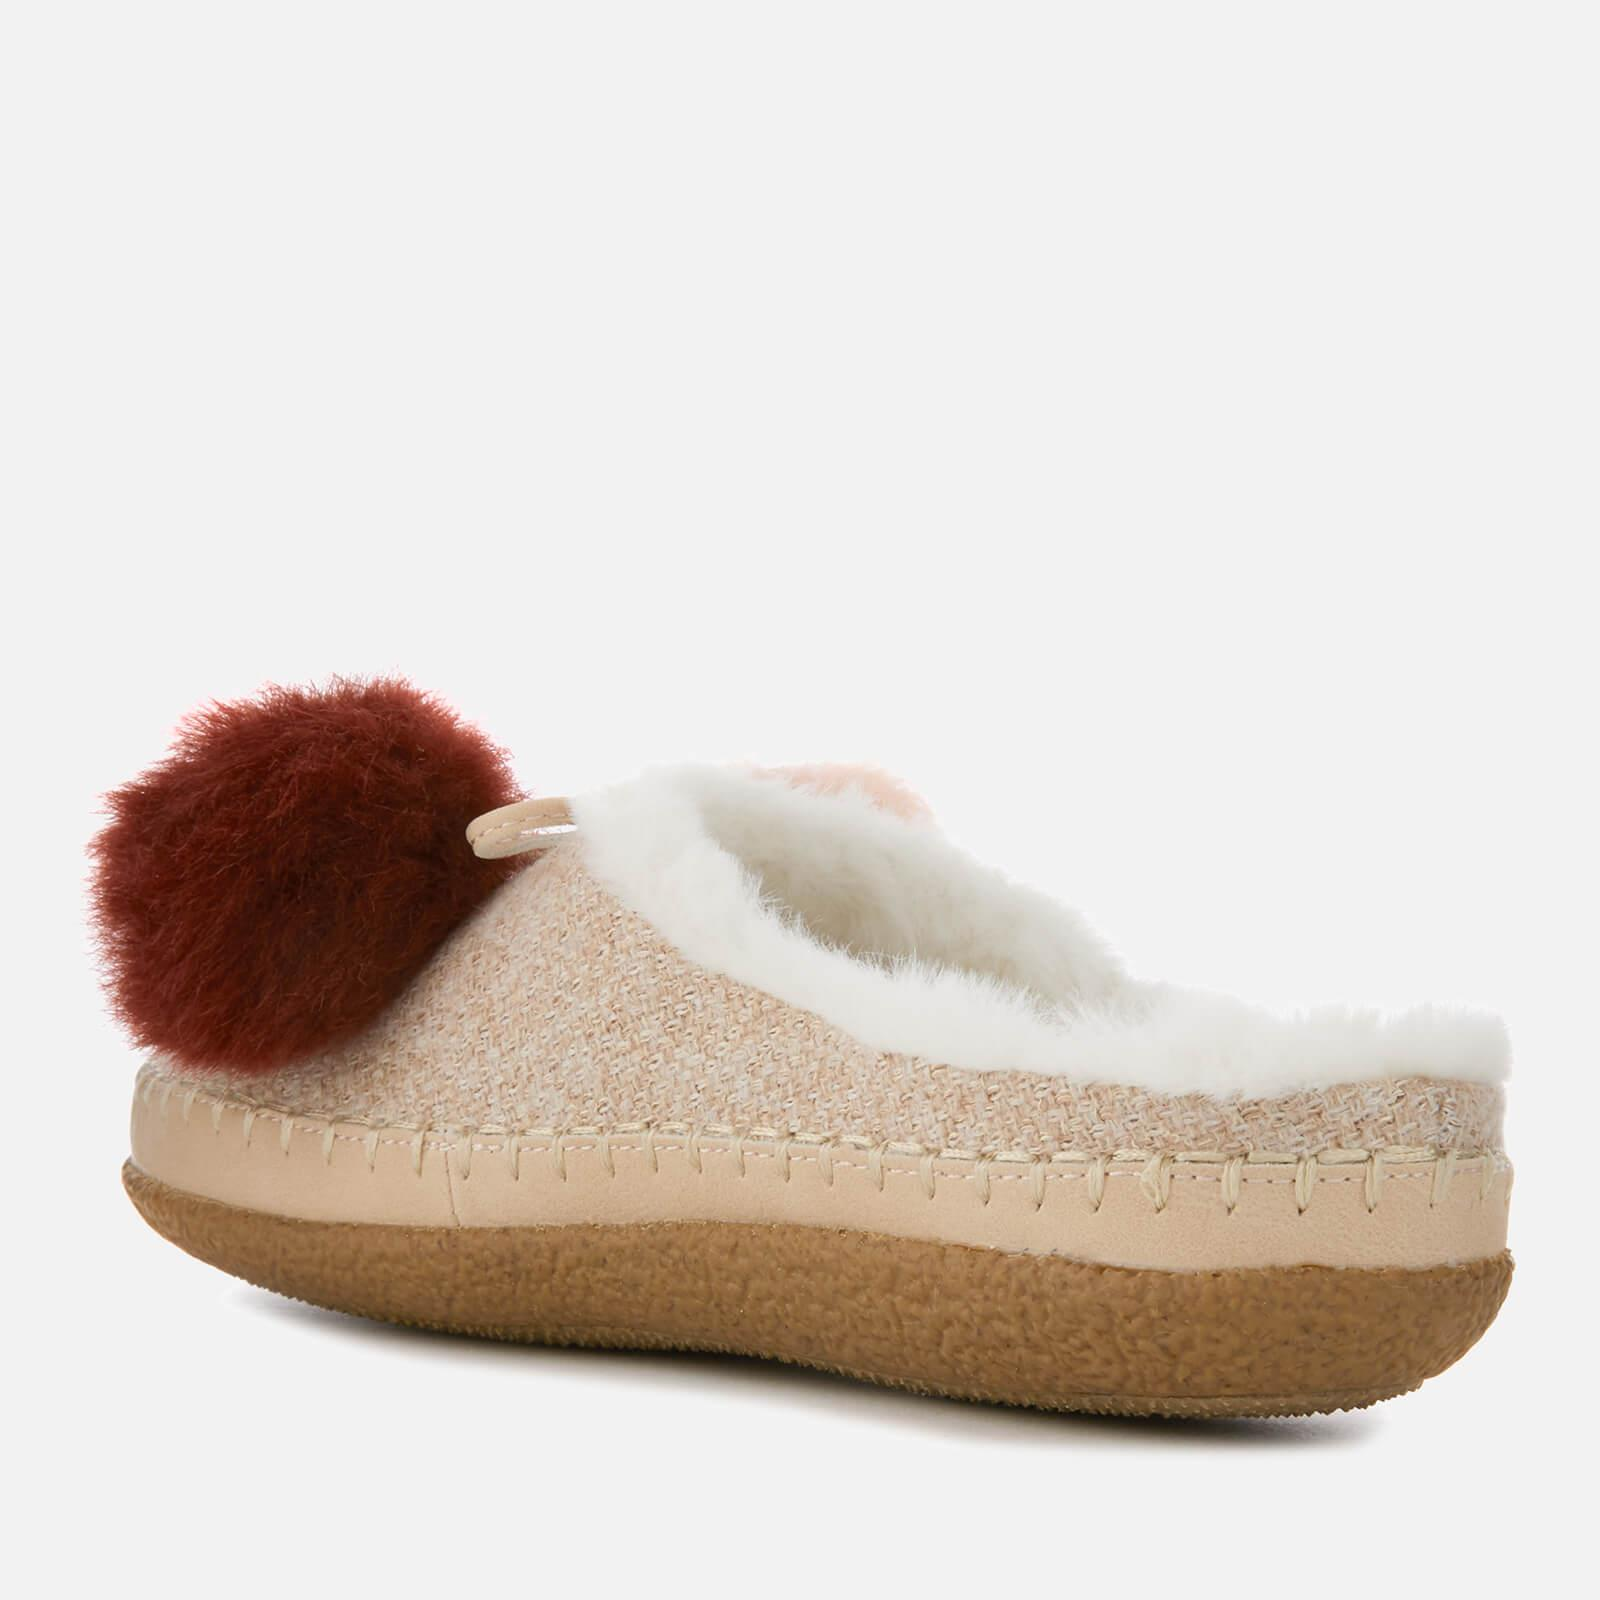 1eed89025ef TOMS - Pink Ivy Multicolour Pom Pom Slippers - Lyst. View fullscreen